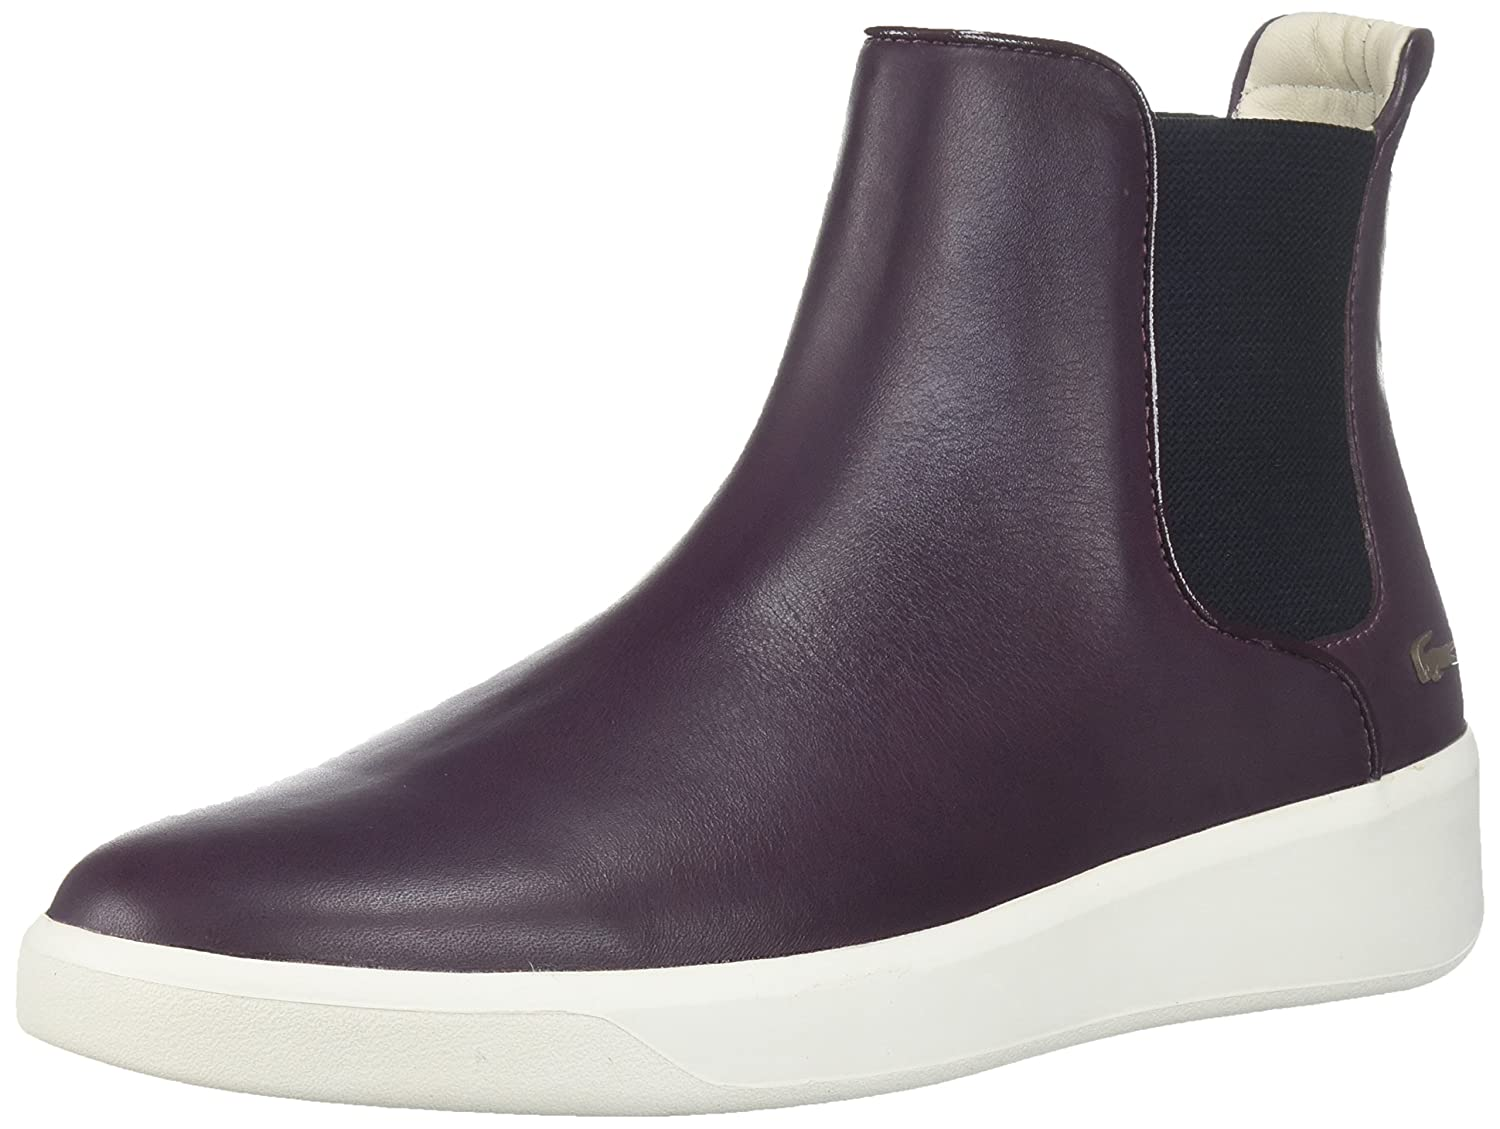 Lacoste Women's Rochelle Chelsea 317 1 Fashion Ankle Boot B01MY4K231 6 B(M) US|Burgundy